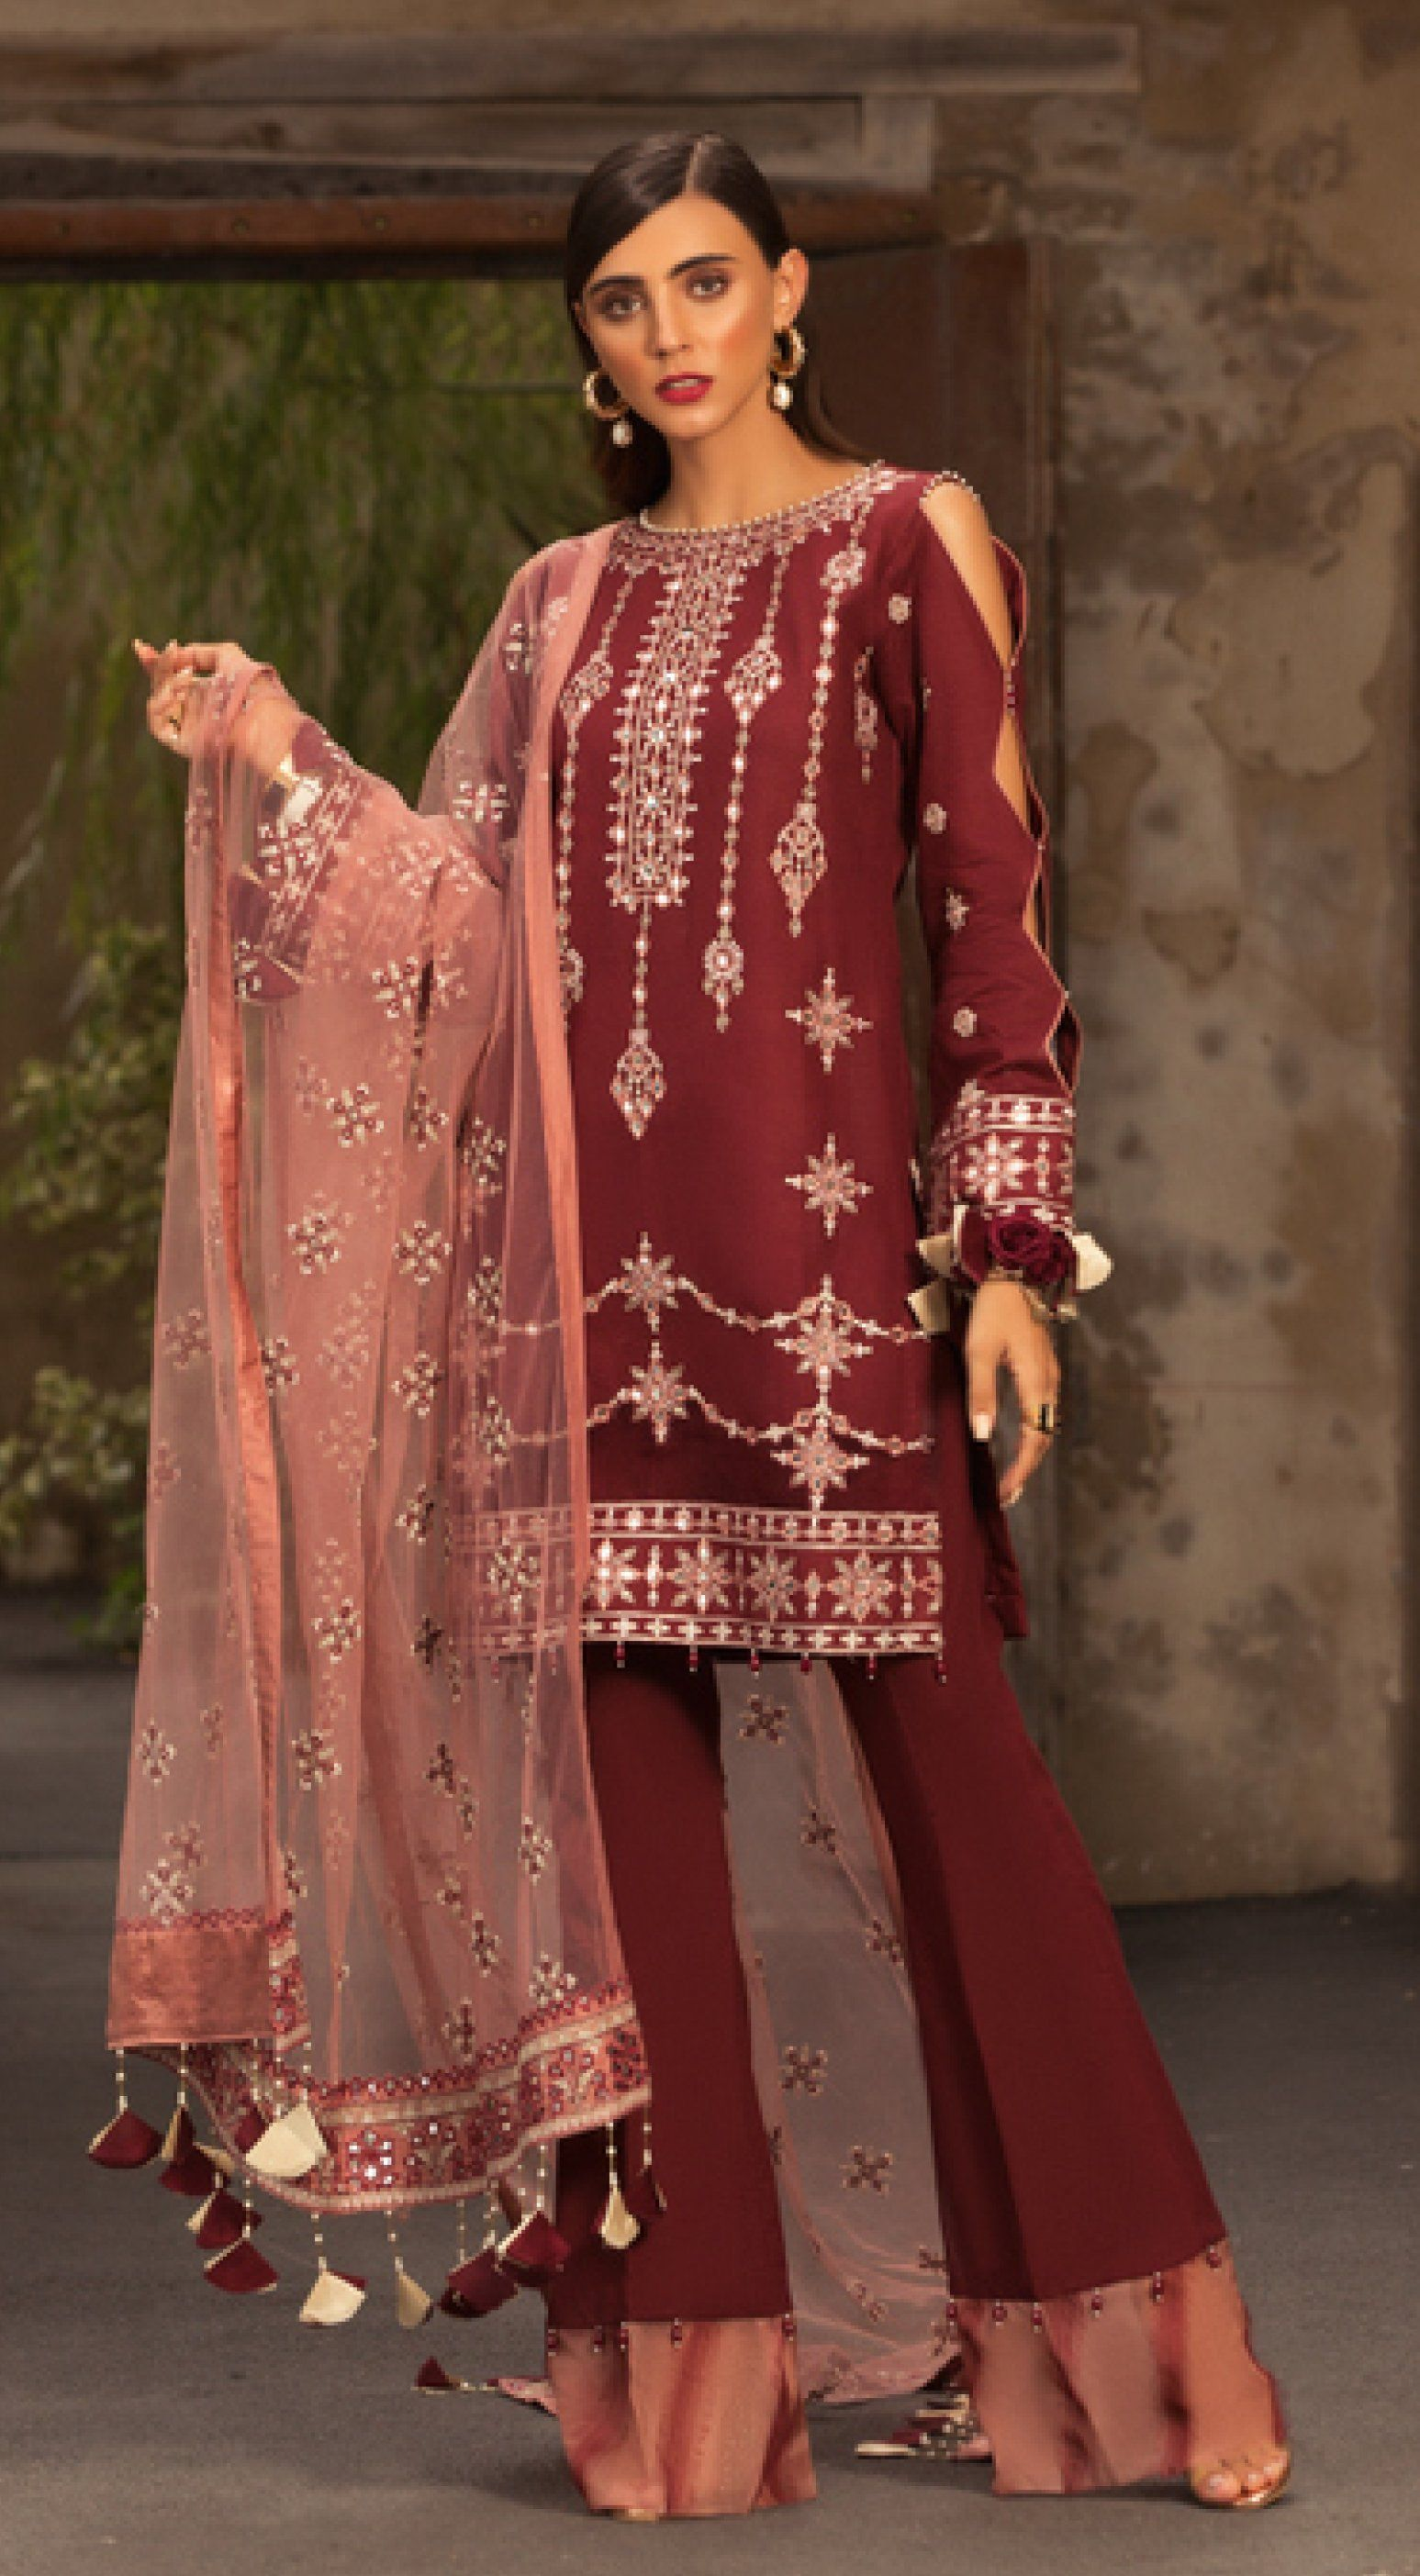 e2230a58c8 Noor by Sadia Asad - Lawn - D9 A in 2019 | Products | 3 piece suits ...